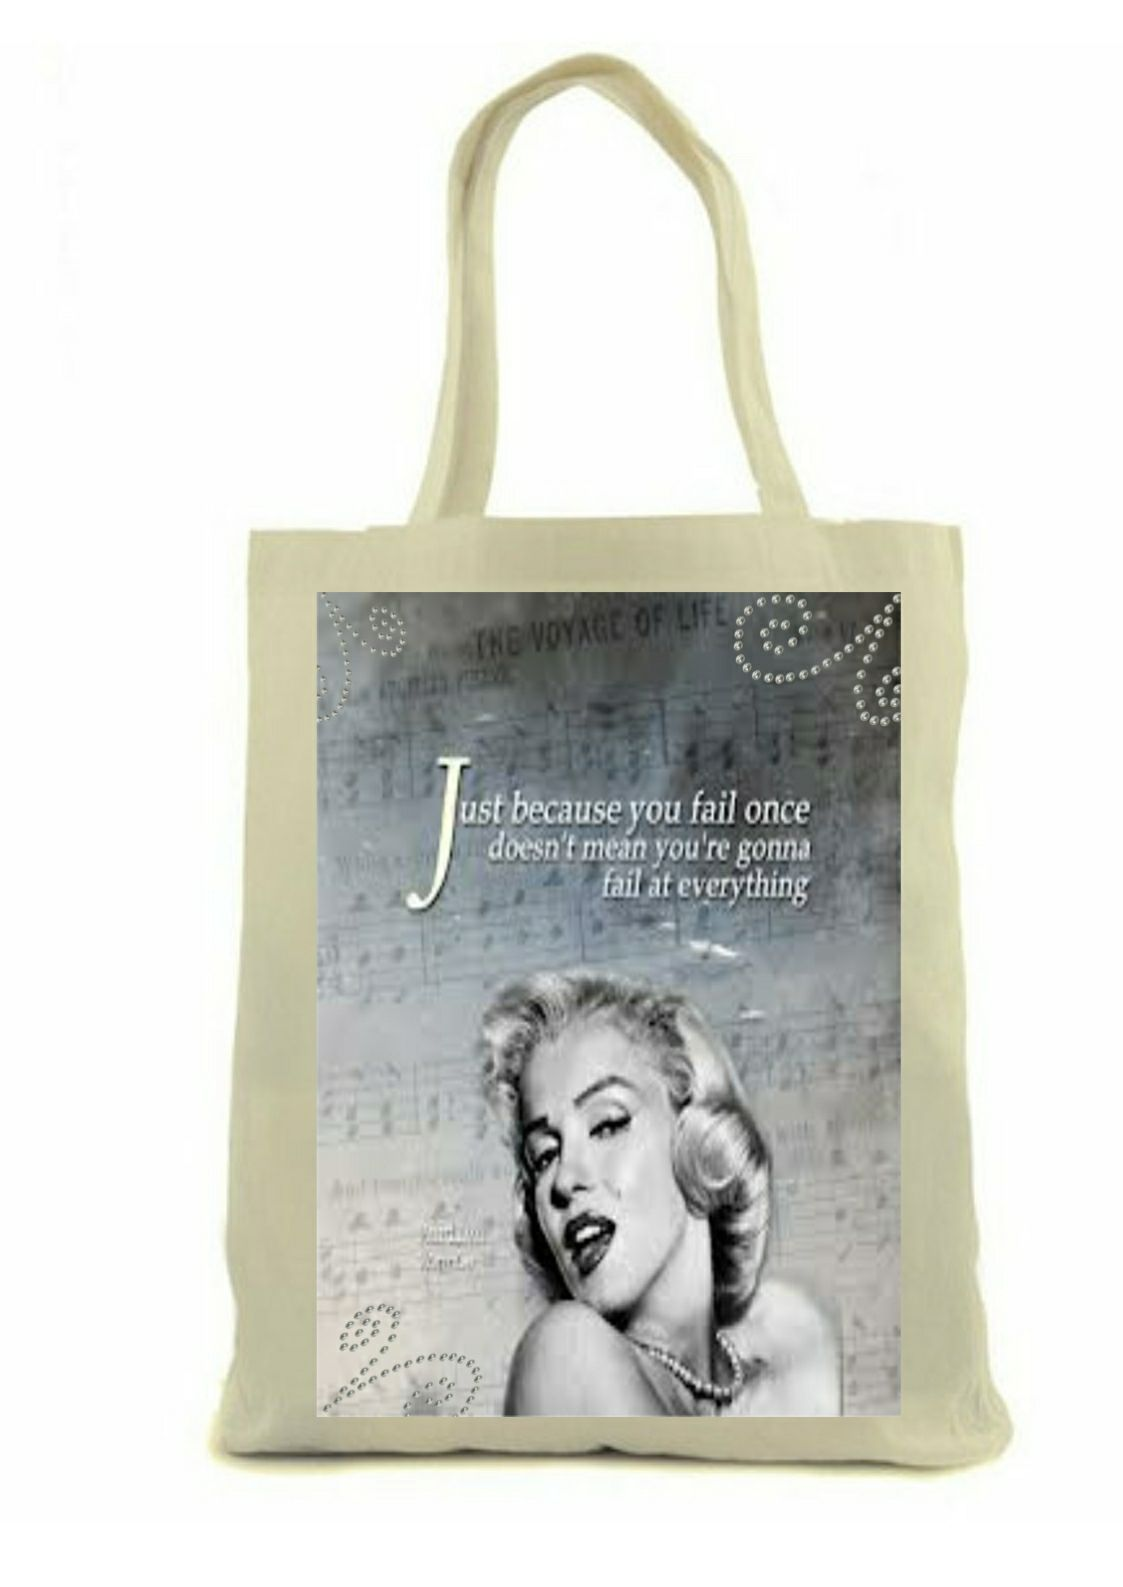 A New Range Of Bags Featuring Icons More To Follow Available At Special